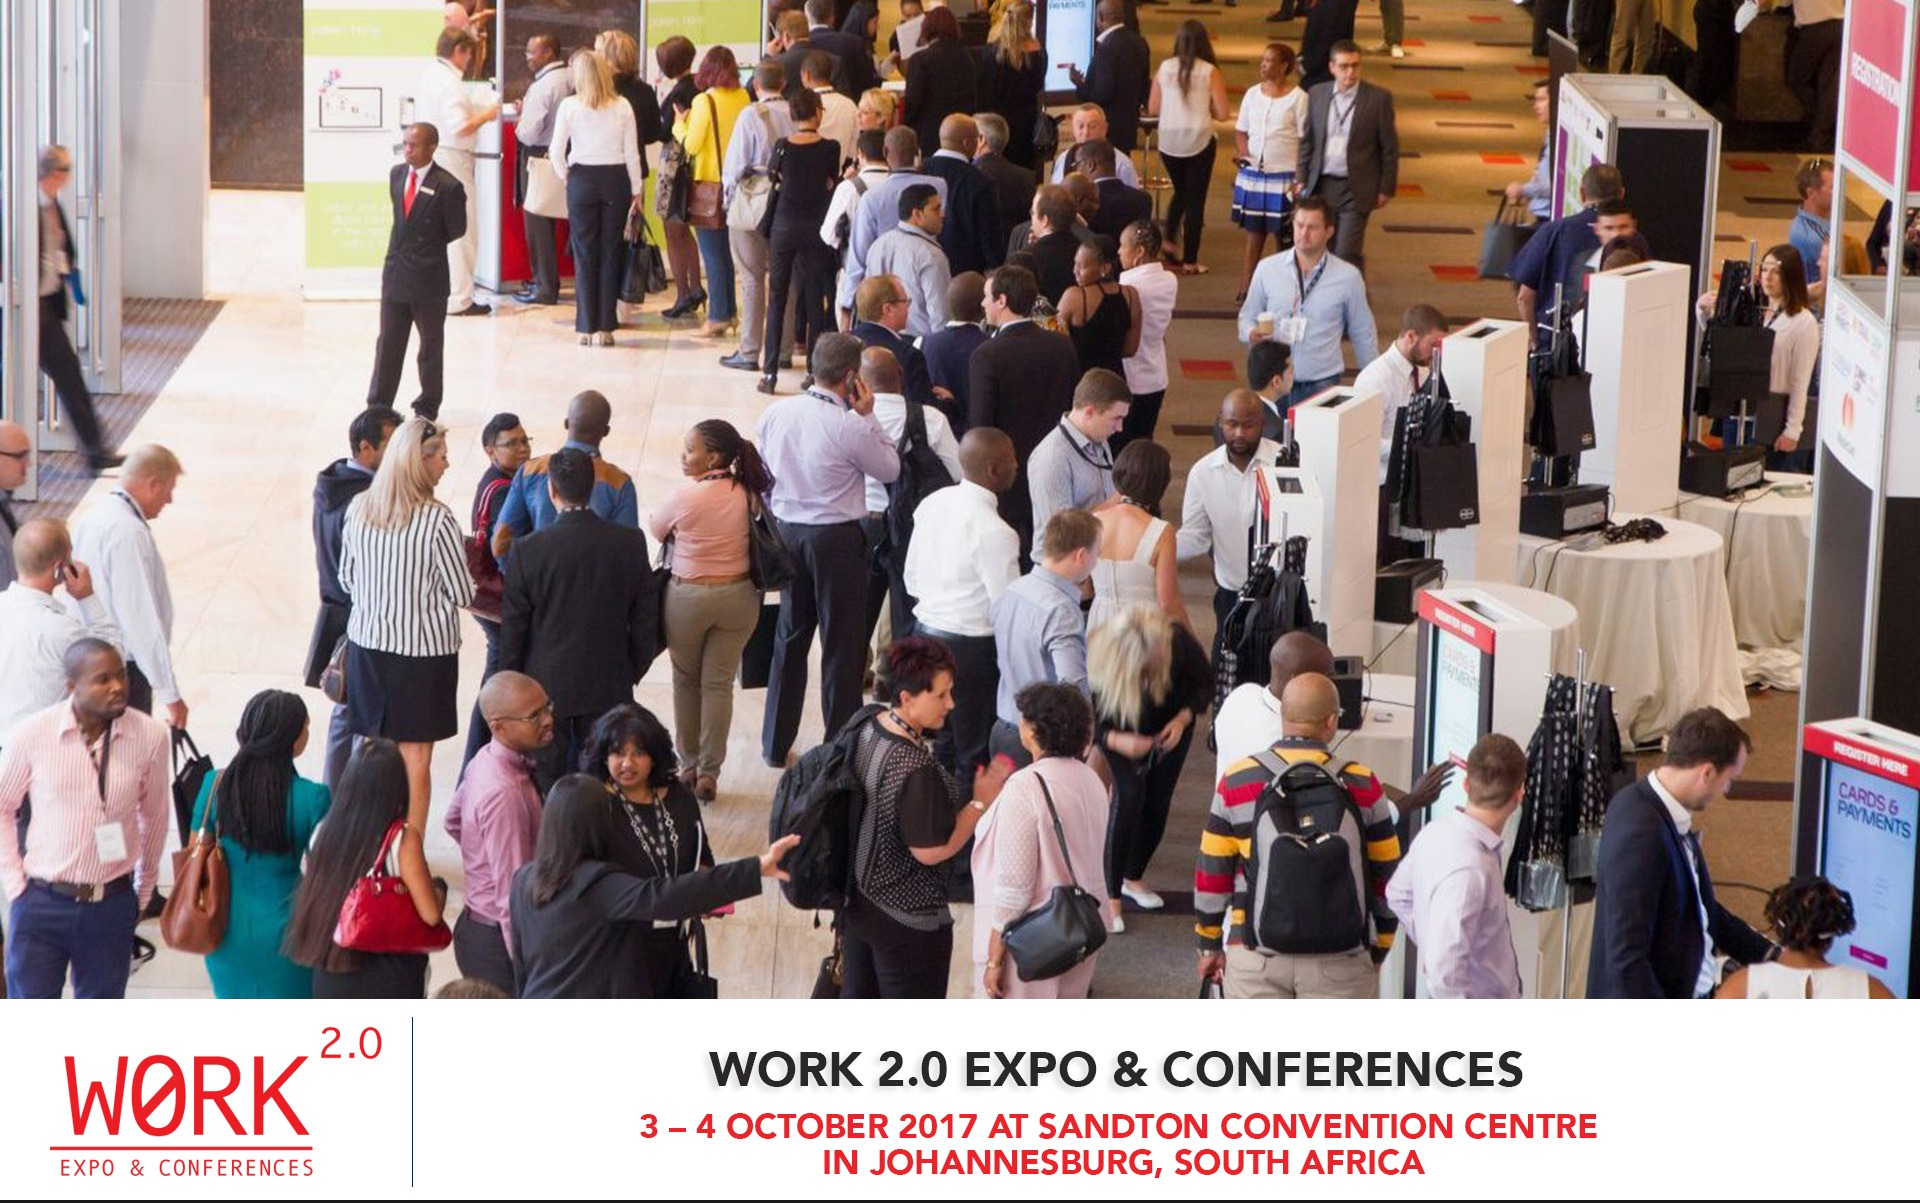 Work 2.0 Expo & Conferences - TGA